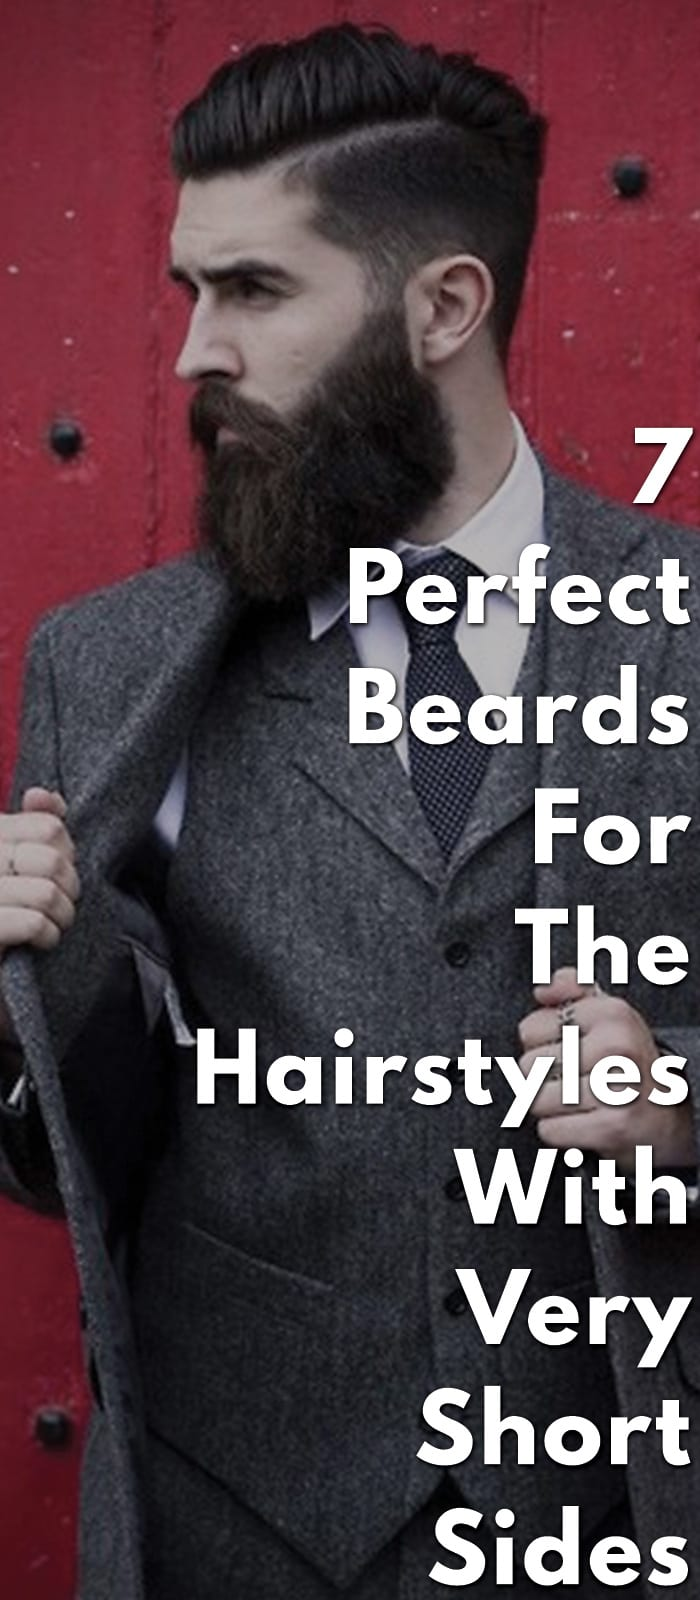 7-Perfect-Beards-For-The-Hairstyles-With-Very-Short-Sides